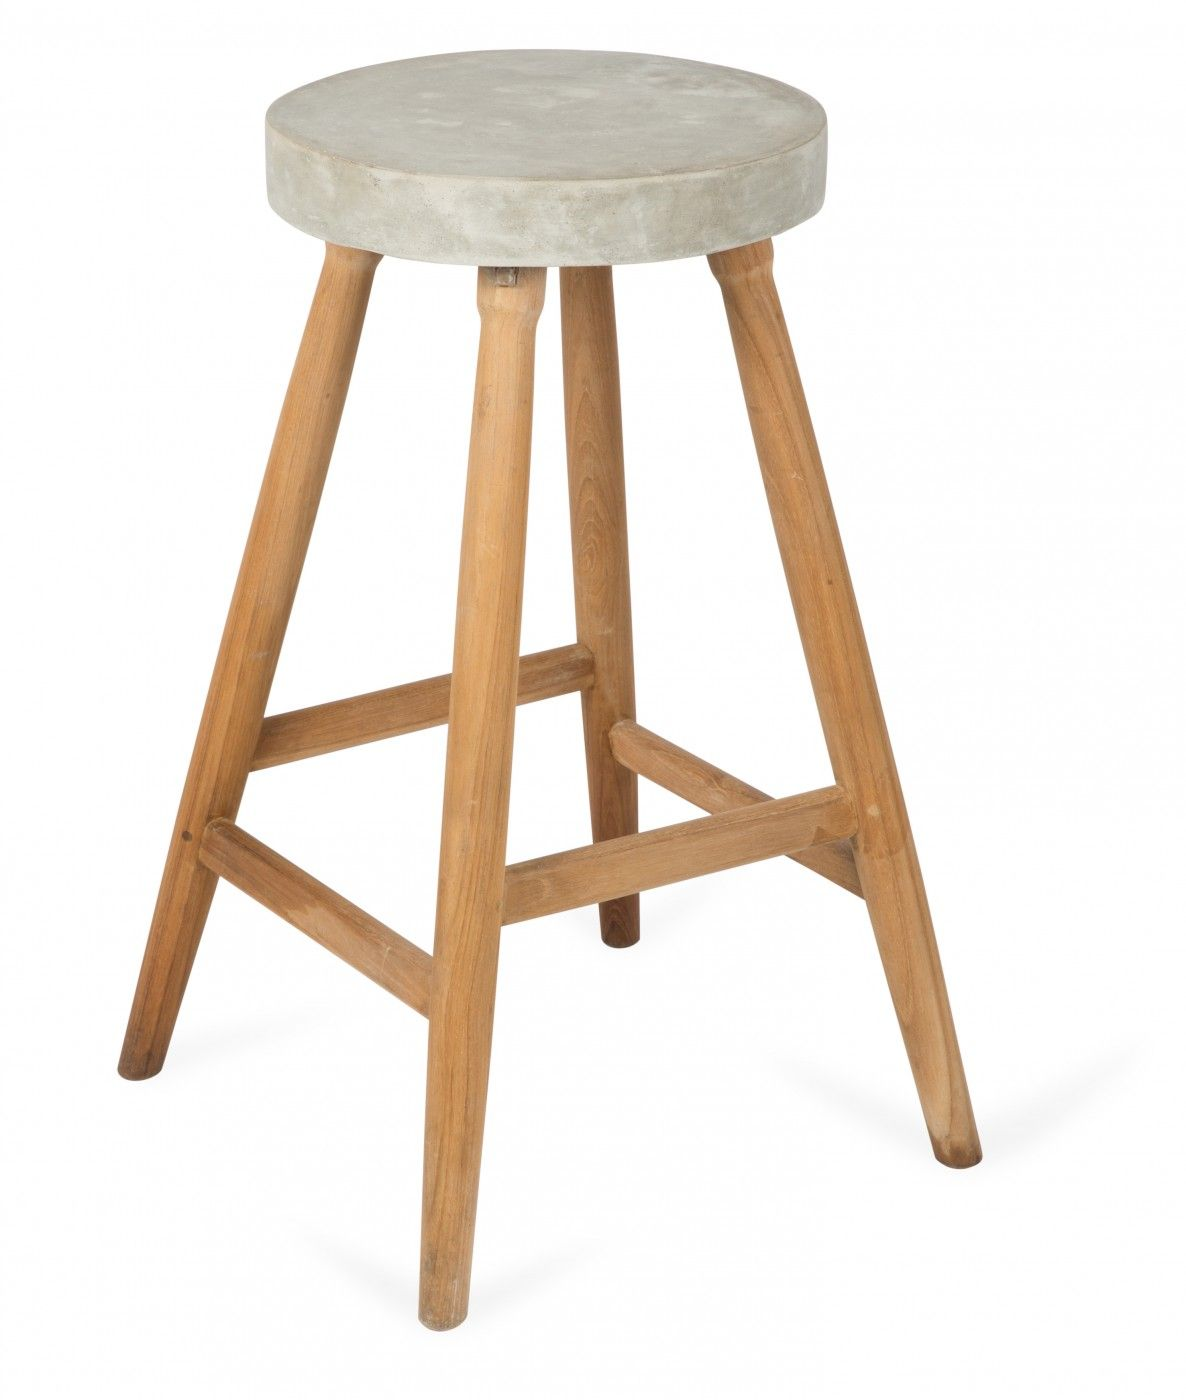 Apollo Concrete Bar Stool At Interiors Online Exclusive High End Furniture